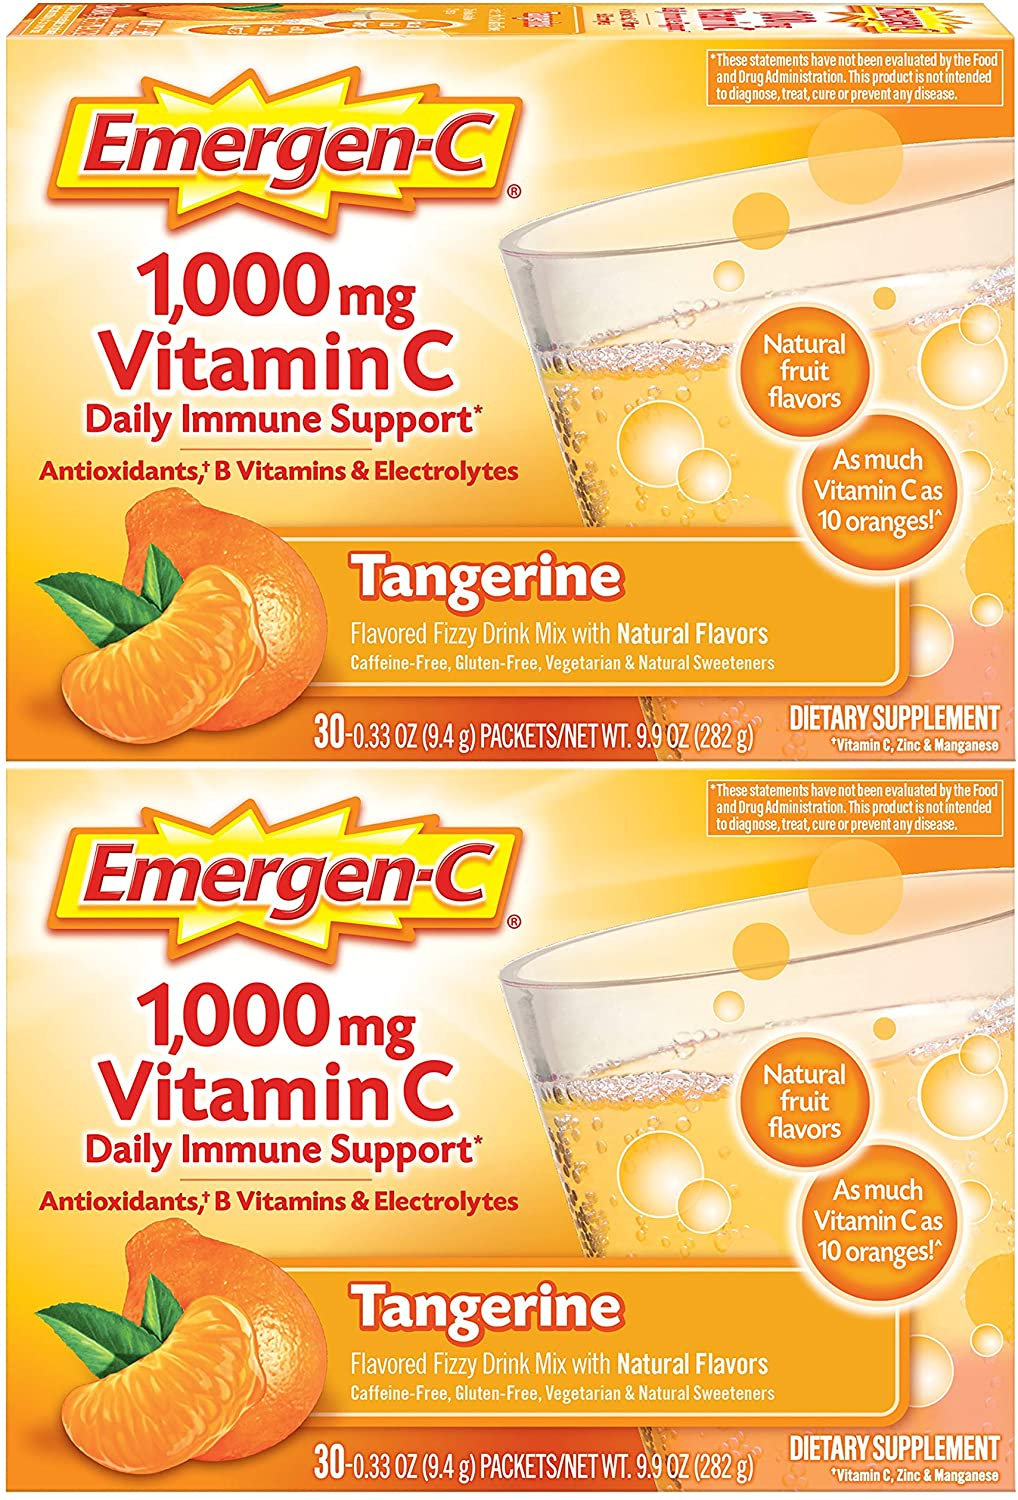 Emergen-C 1000mg Vitamin C Powder, with Antioxidants, B Vitamins and Electrolytes, Vitamin C Supplements for Immune Support, Caffeine Free Drink Mix, Tangerine Flavor - 30 count, pack of 2